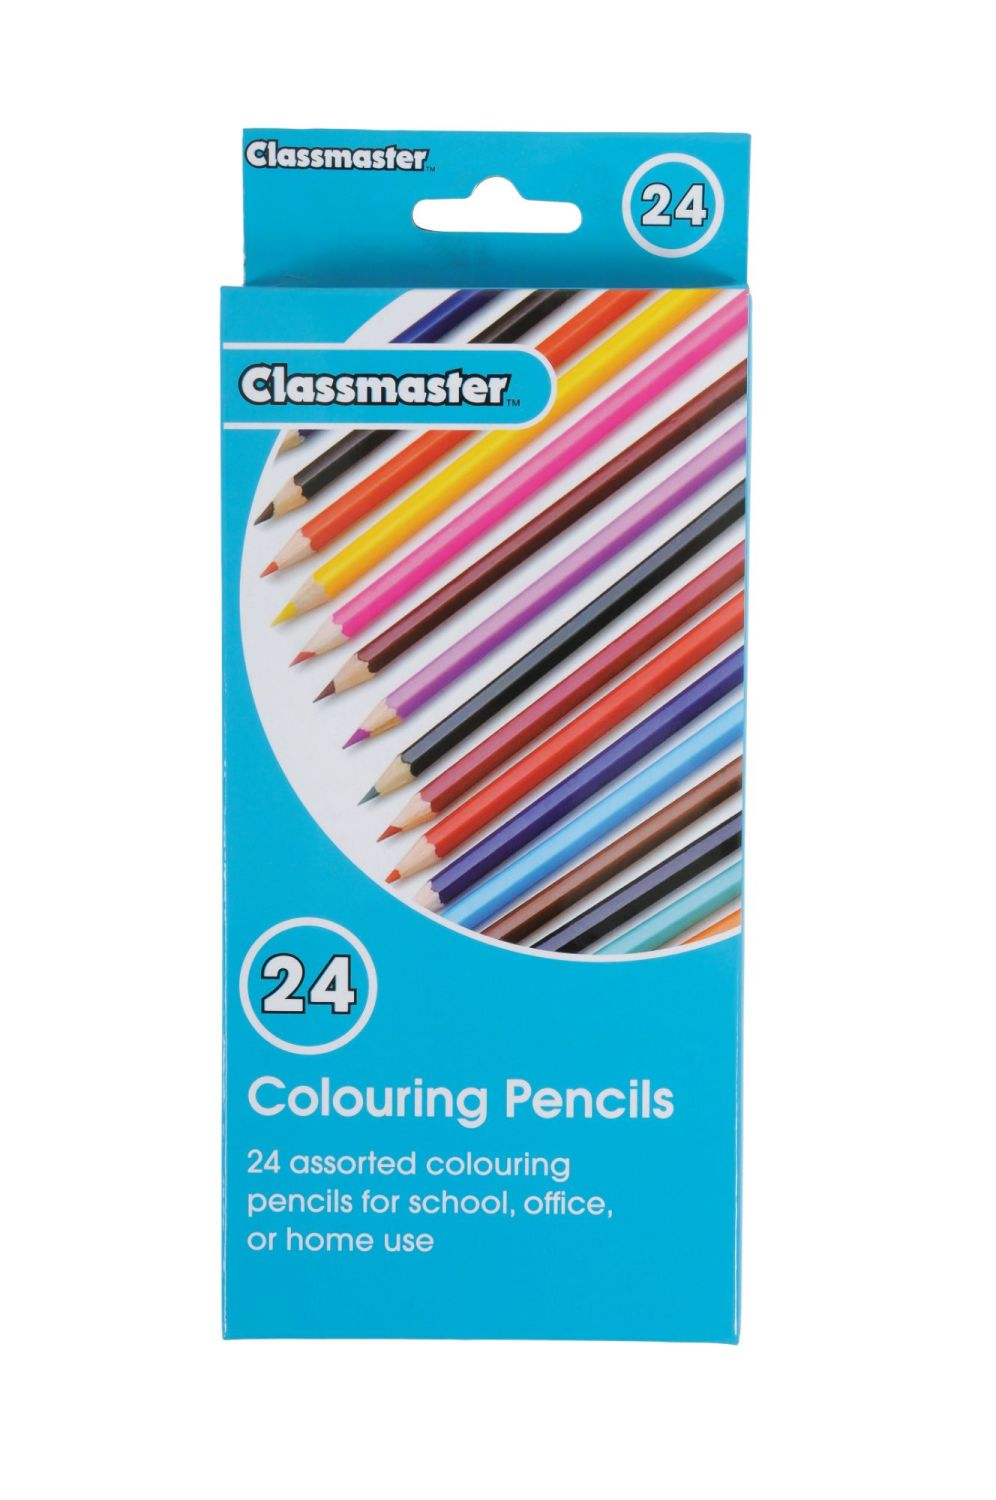 Classmaster Colouring Pencils - Assorted - Pack of 24